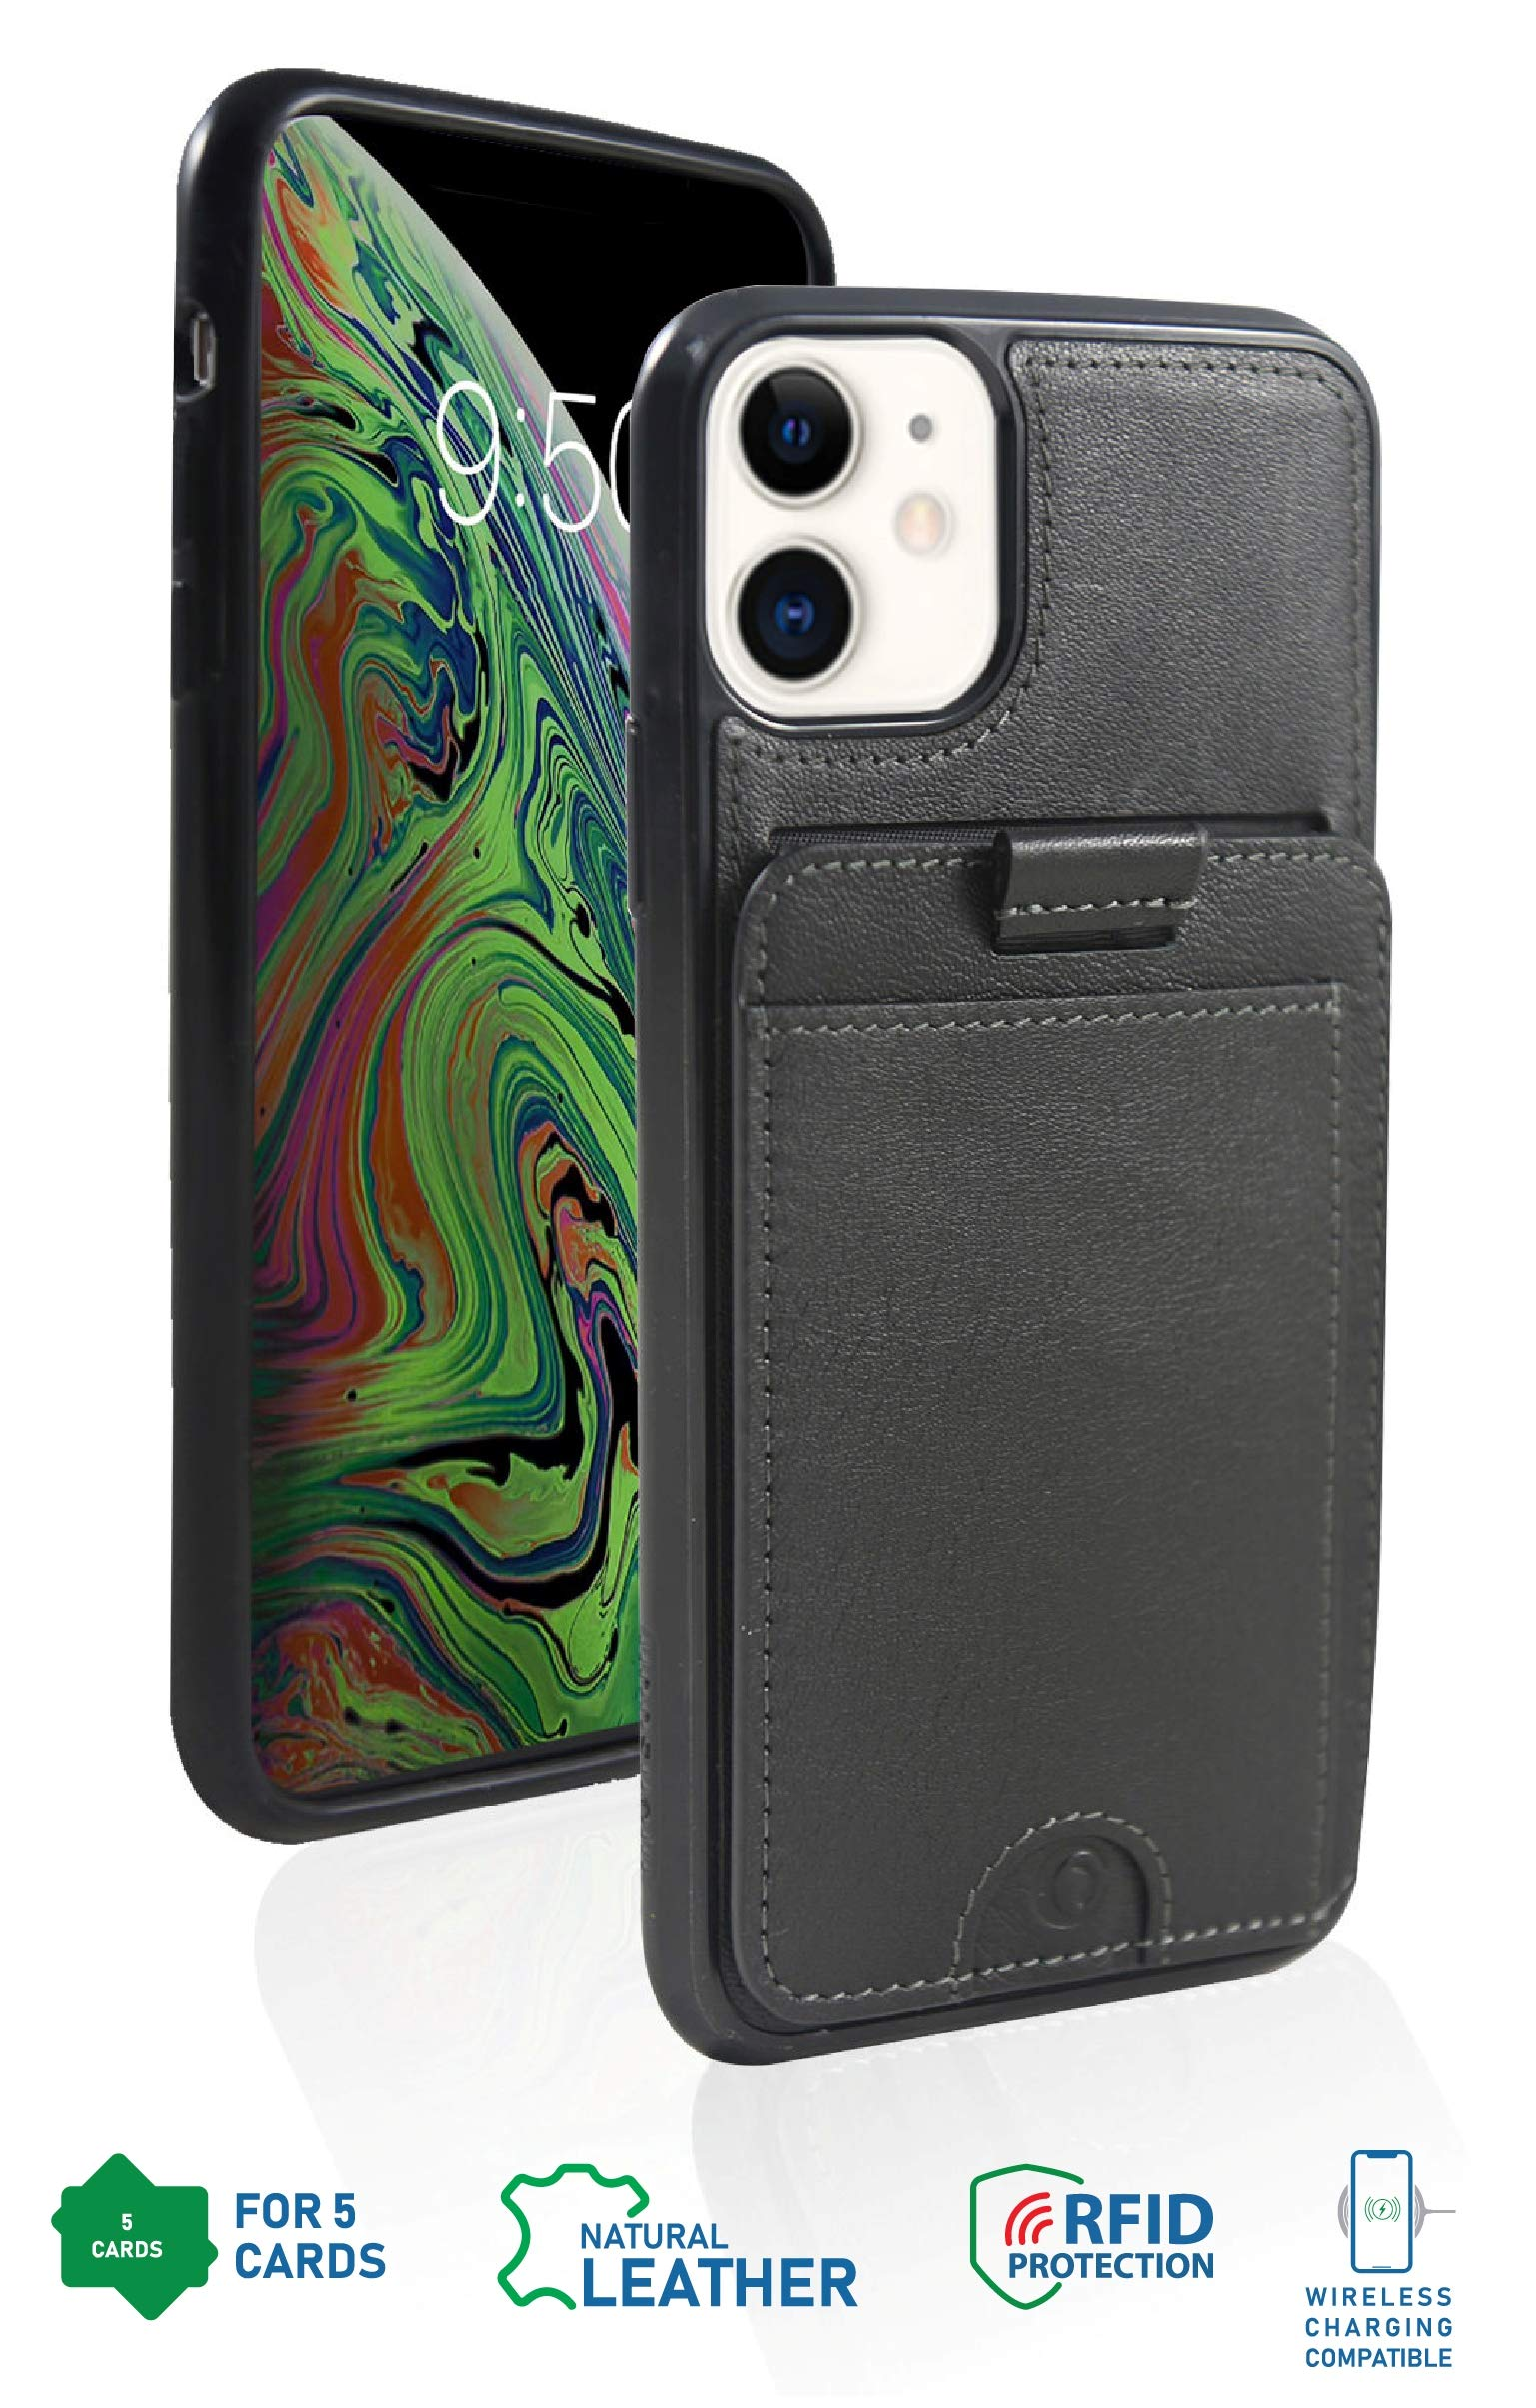 Monsoon [Cruiser Genuine Leather Wallet Case with Removable Slim Wallet for iPhone 11 - Holds 5 Cards | RFID | Stand | Wireless Charging OR Magnetic Car Mount Compatible - Black